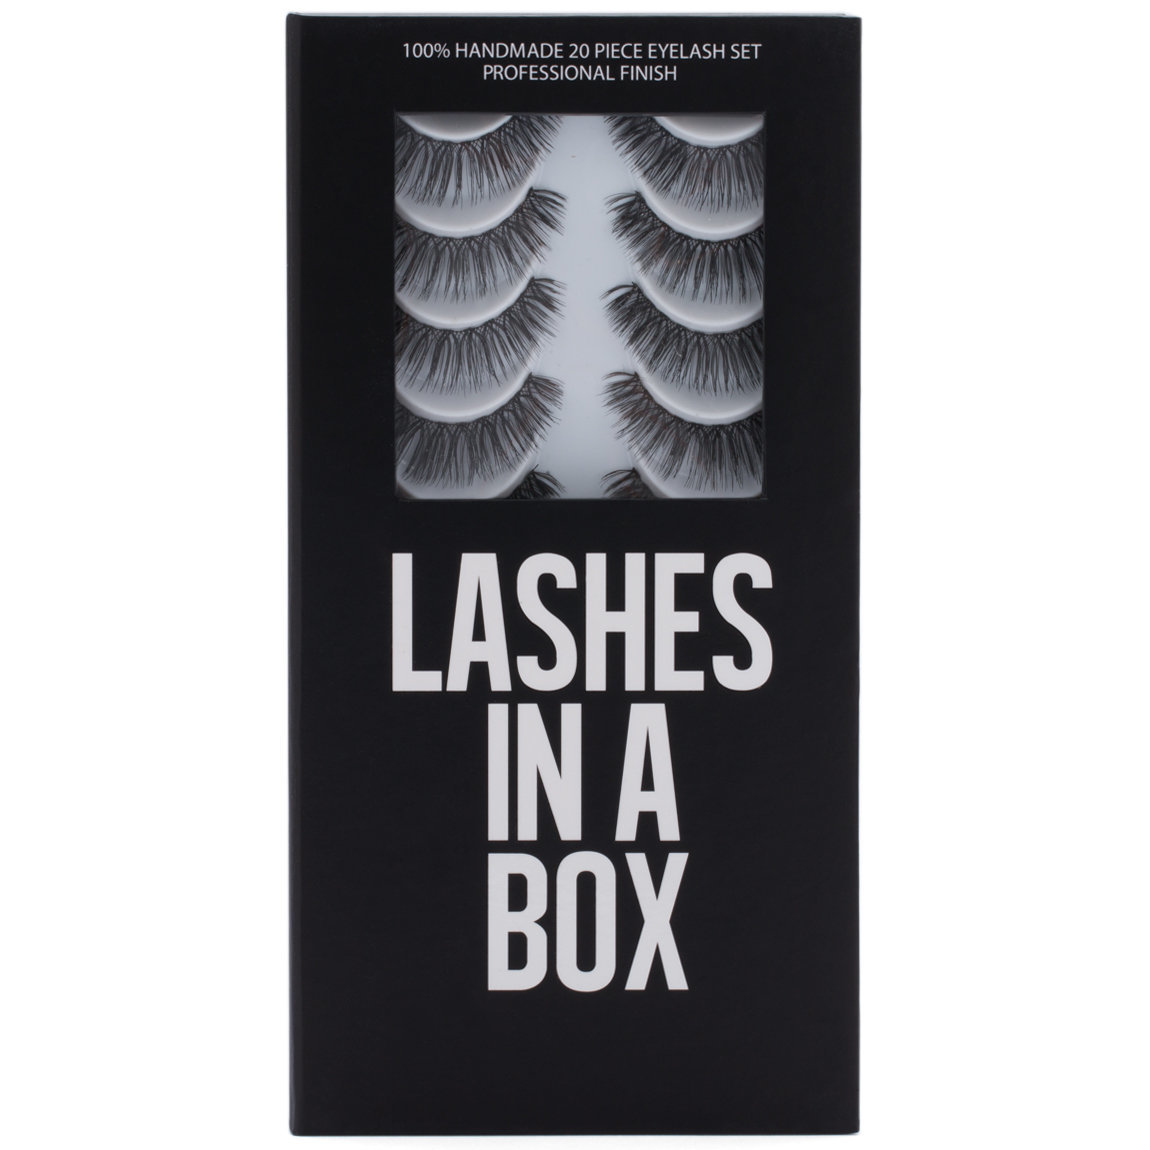 LASHES IN A BOX N°19 product swatch.